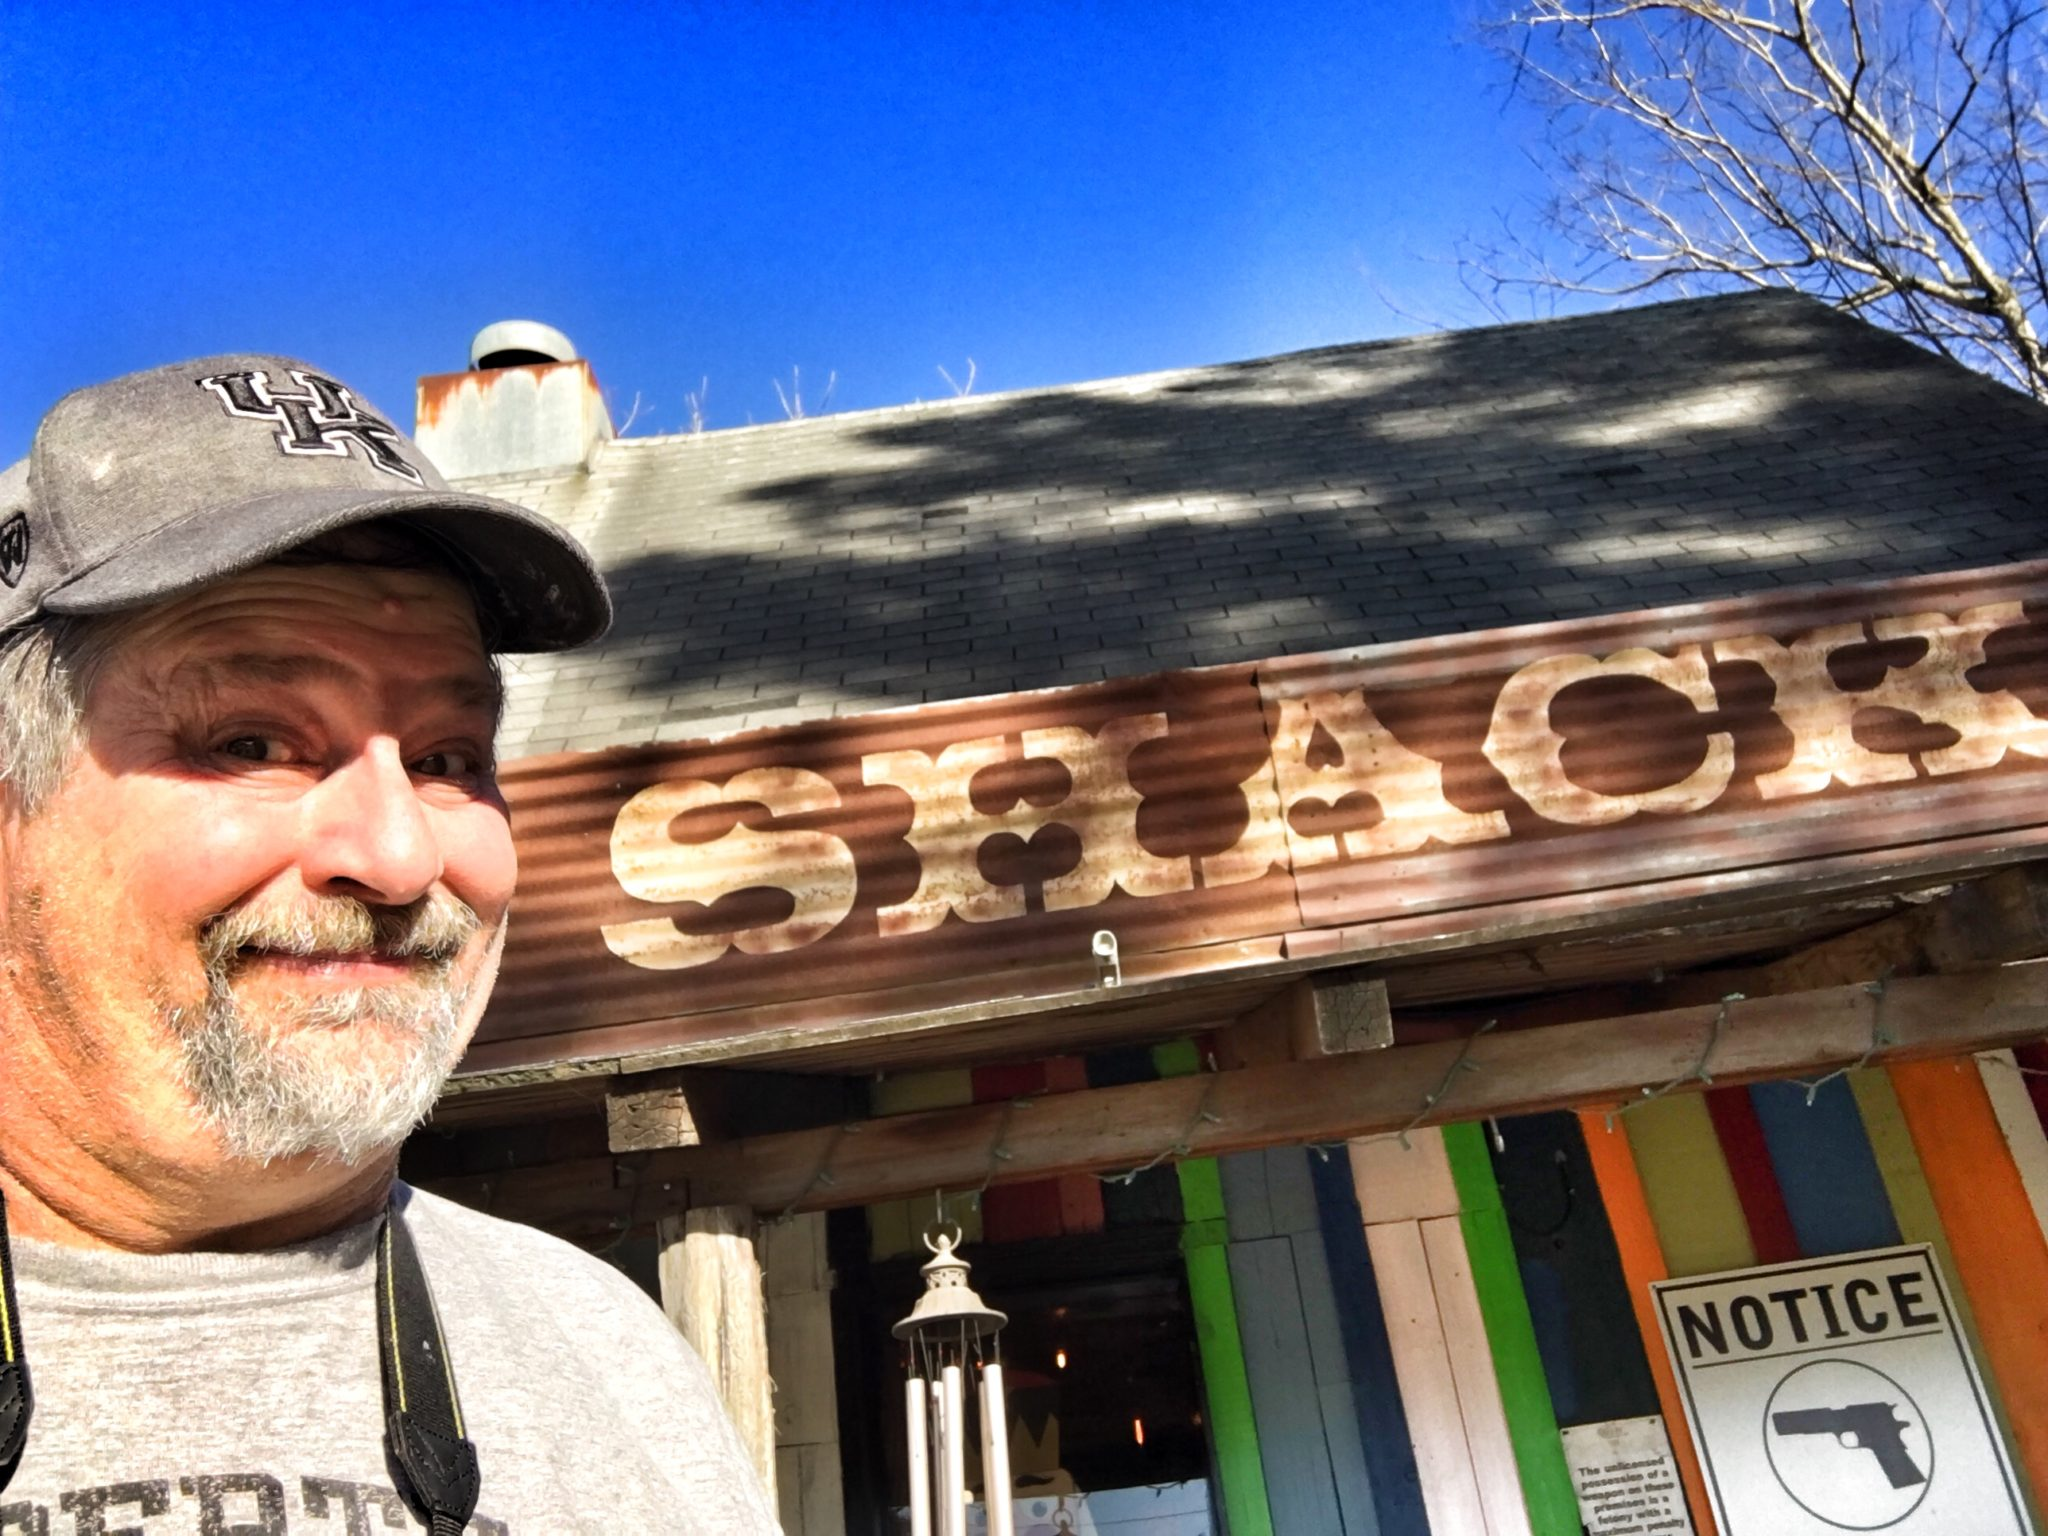 The Shack Burger Resort in Cypress, Texas